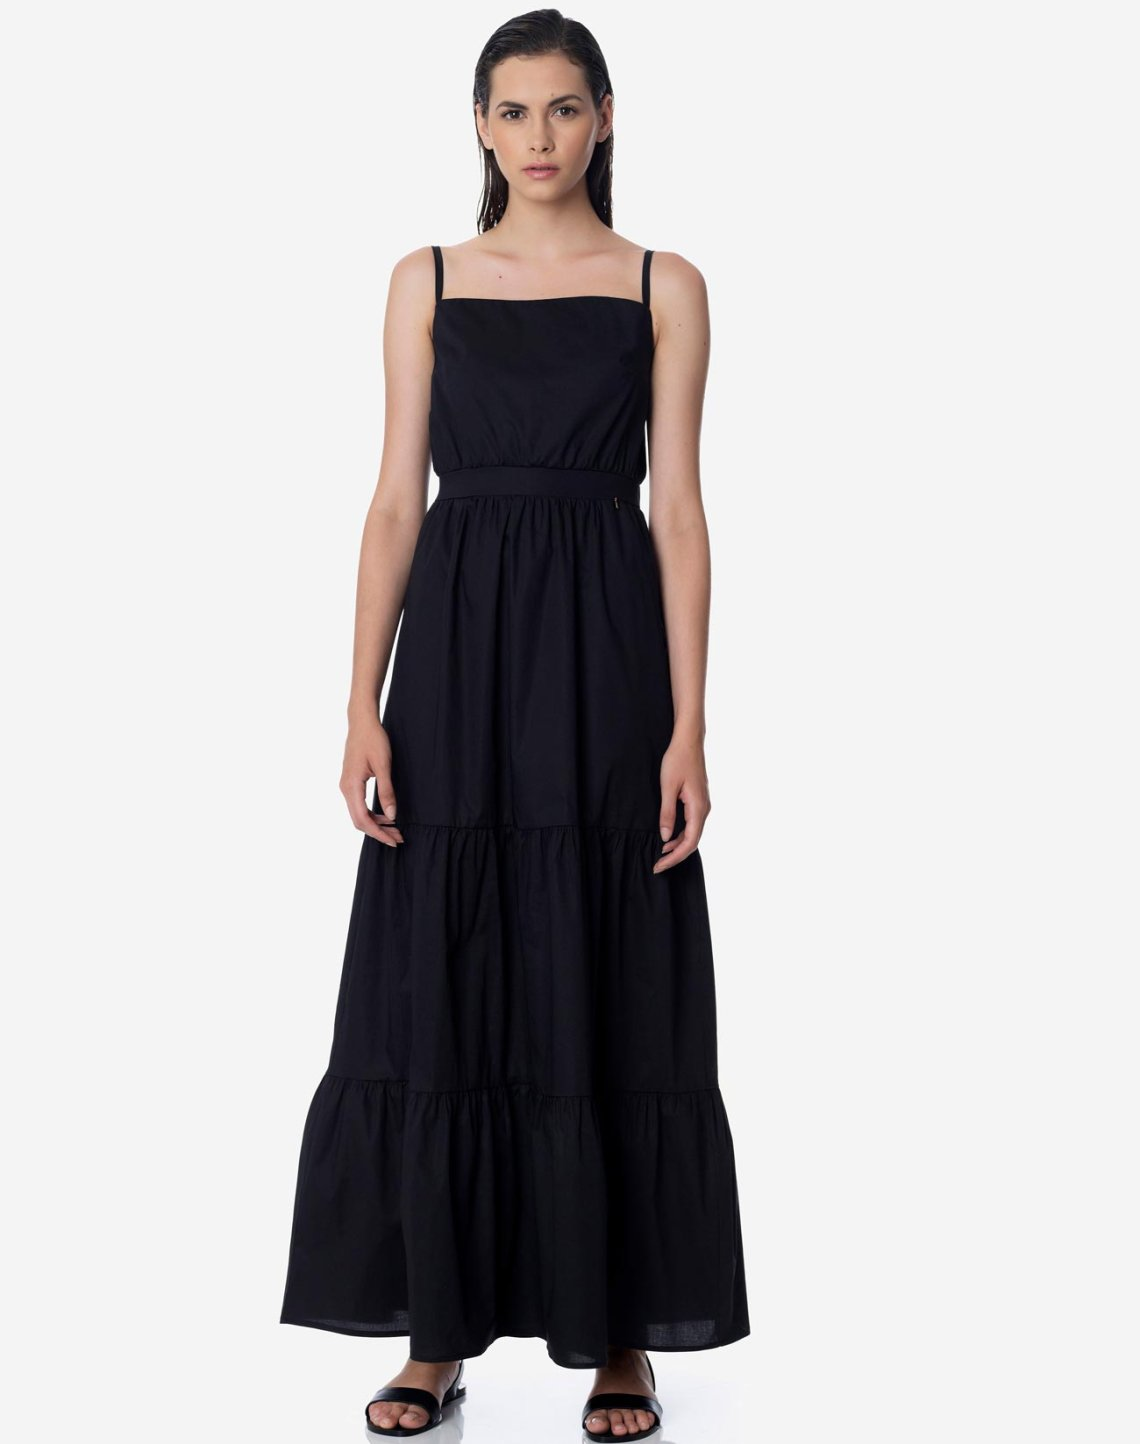 Maxi dress with straps